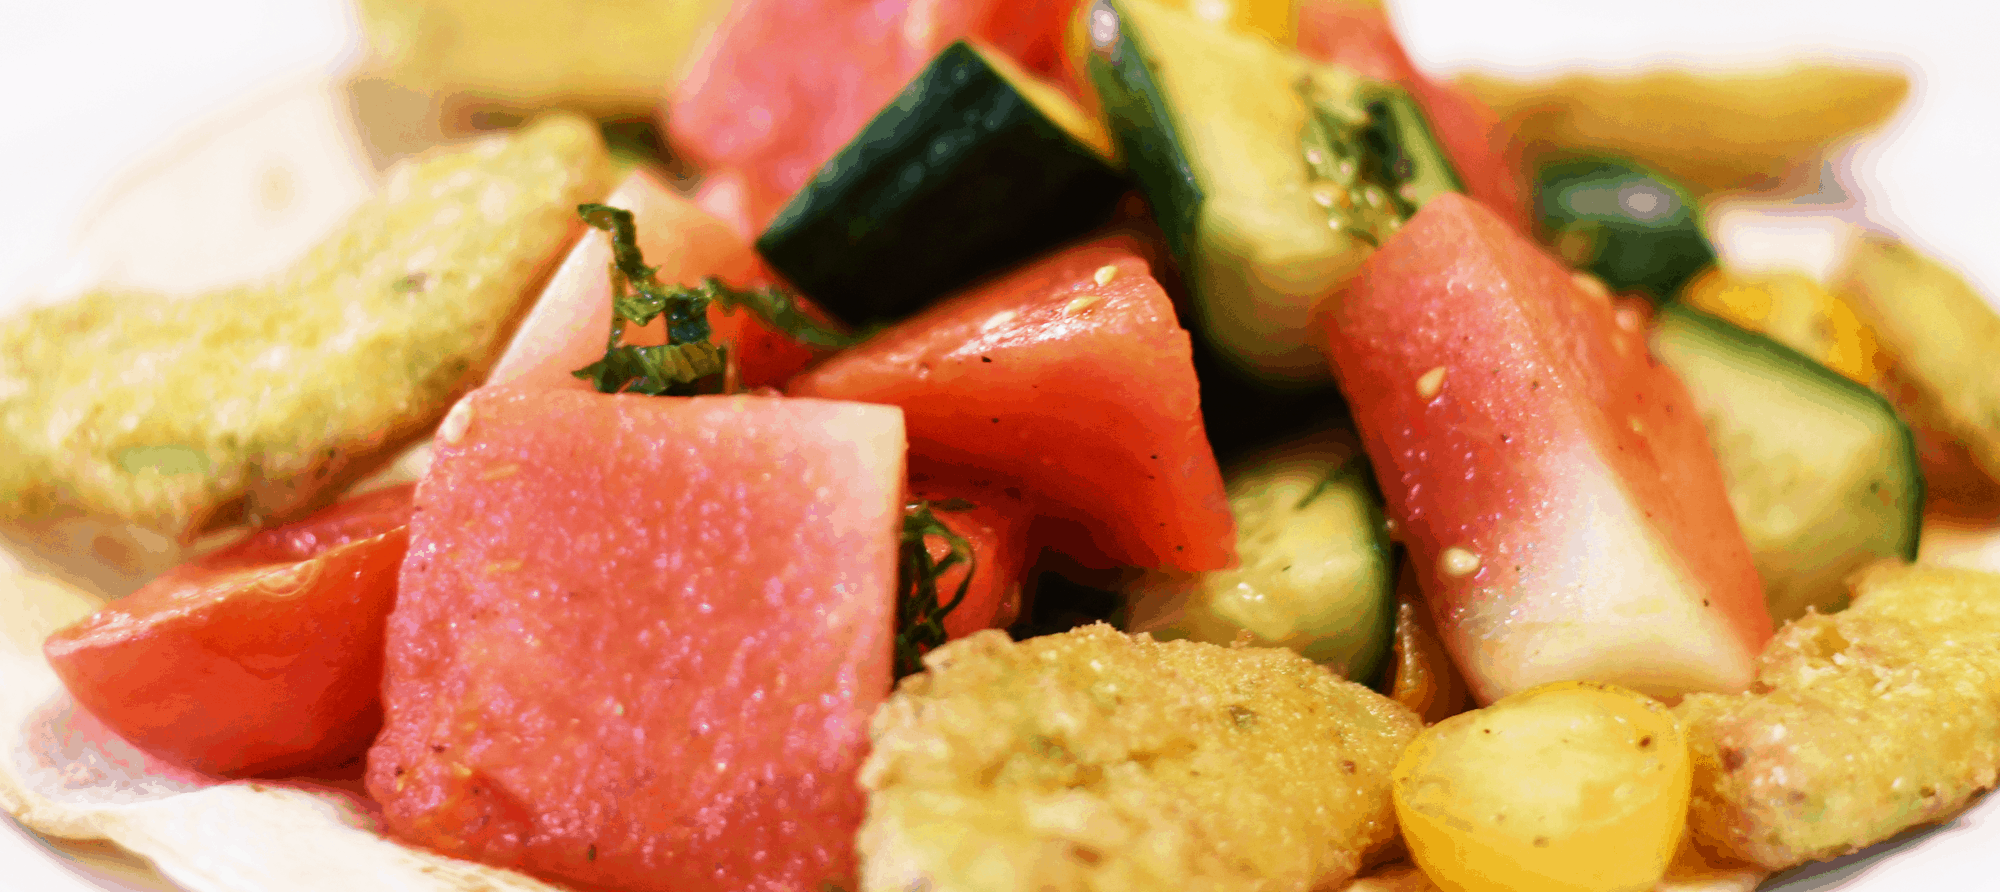 Seasonal fruit and tomato salad with watermelon and cucumber